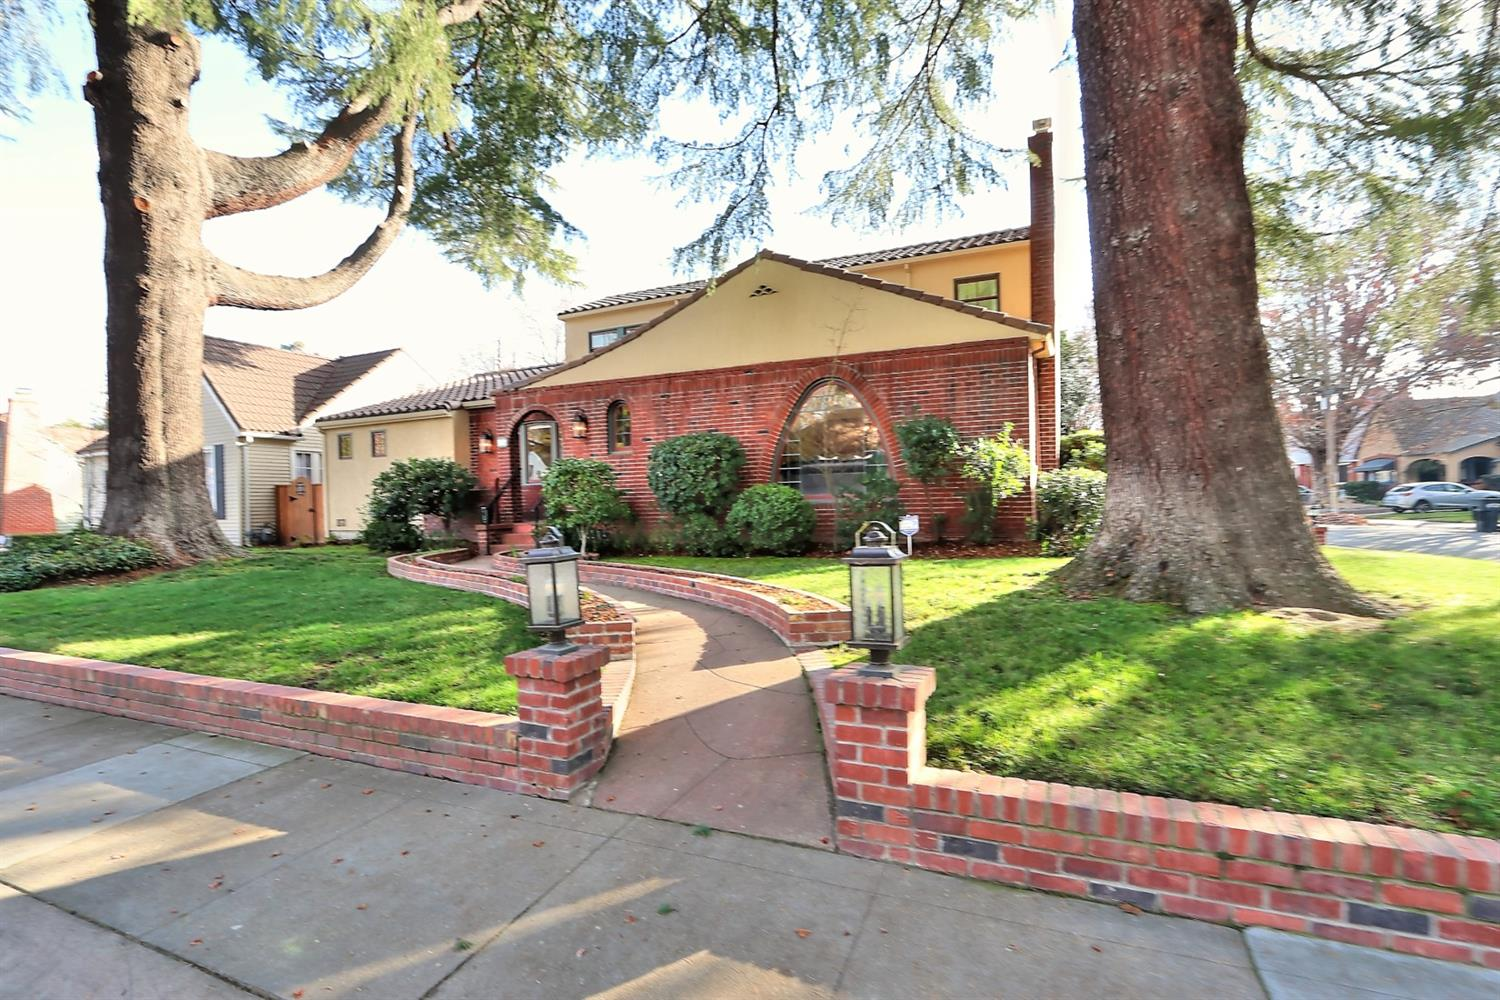 Stunning Brick Mediterranean in Curtis Park - Original features with all the updates, arched doorways, leaded glass windows, hardwood floors with inlay, 3 cozy gas fireplaces and original built-ins. 4 good size bedrooms with big closets, 2.5 baths ready to move in! Bright kitchen(remodeled 2016)has quartz countertops, stainless appliances, breakfast bar and wine frig. Opens up to the family room along with built-in office space and access to the back deck. The downstairs private master suite(addition 2018)has cozy gas fireplace a view of the yard. Big master bath with his/hers sinks & Bubble tub, plus walk in shower. Upstairs you will find 2 bedrooms and 1 full updated bath.  Nicely landscaped with 2 amazing Heritage trees-Deodar Cedars in